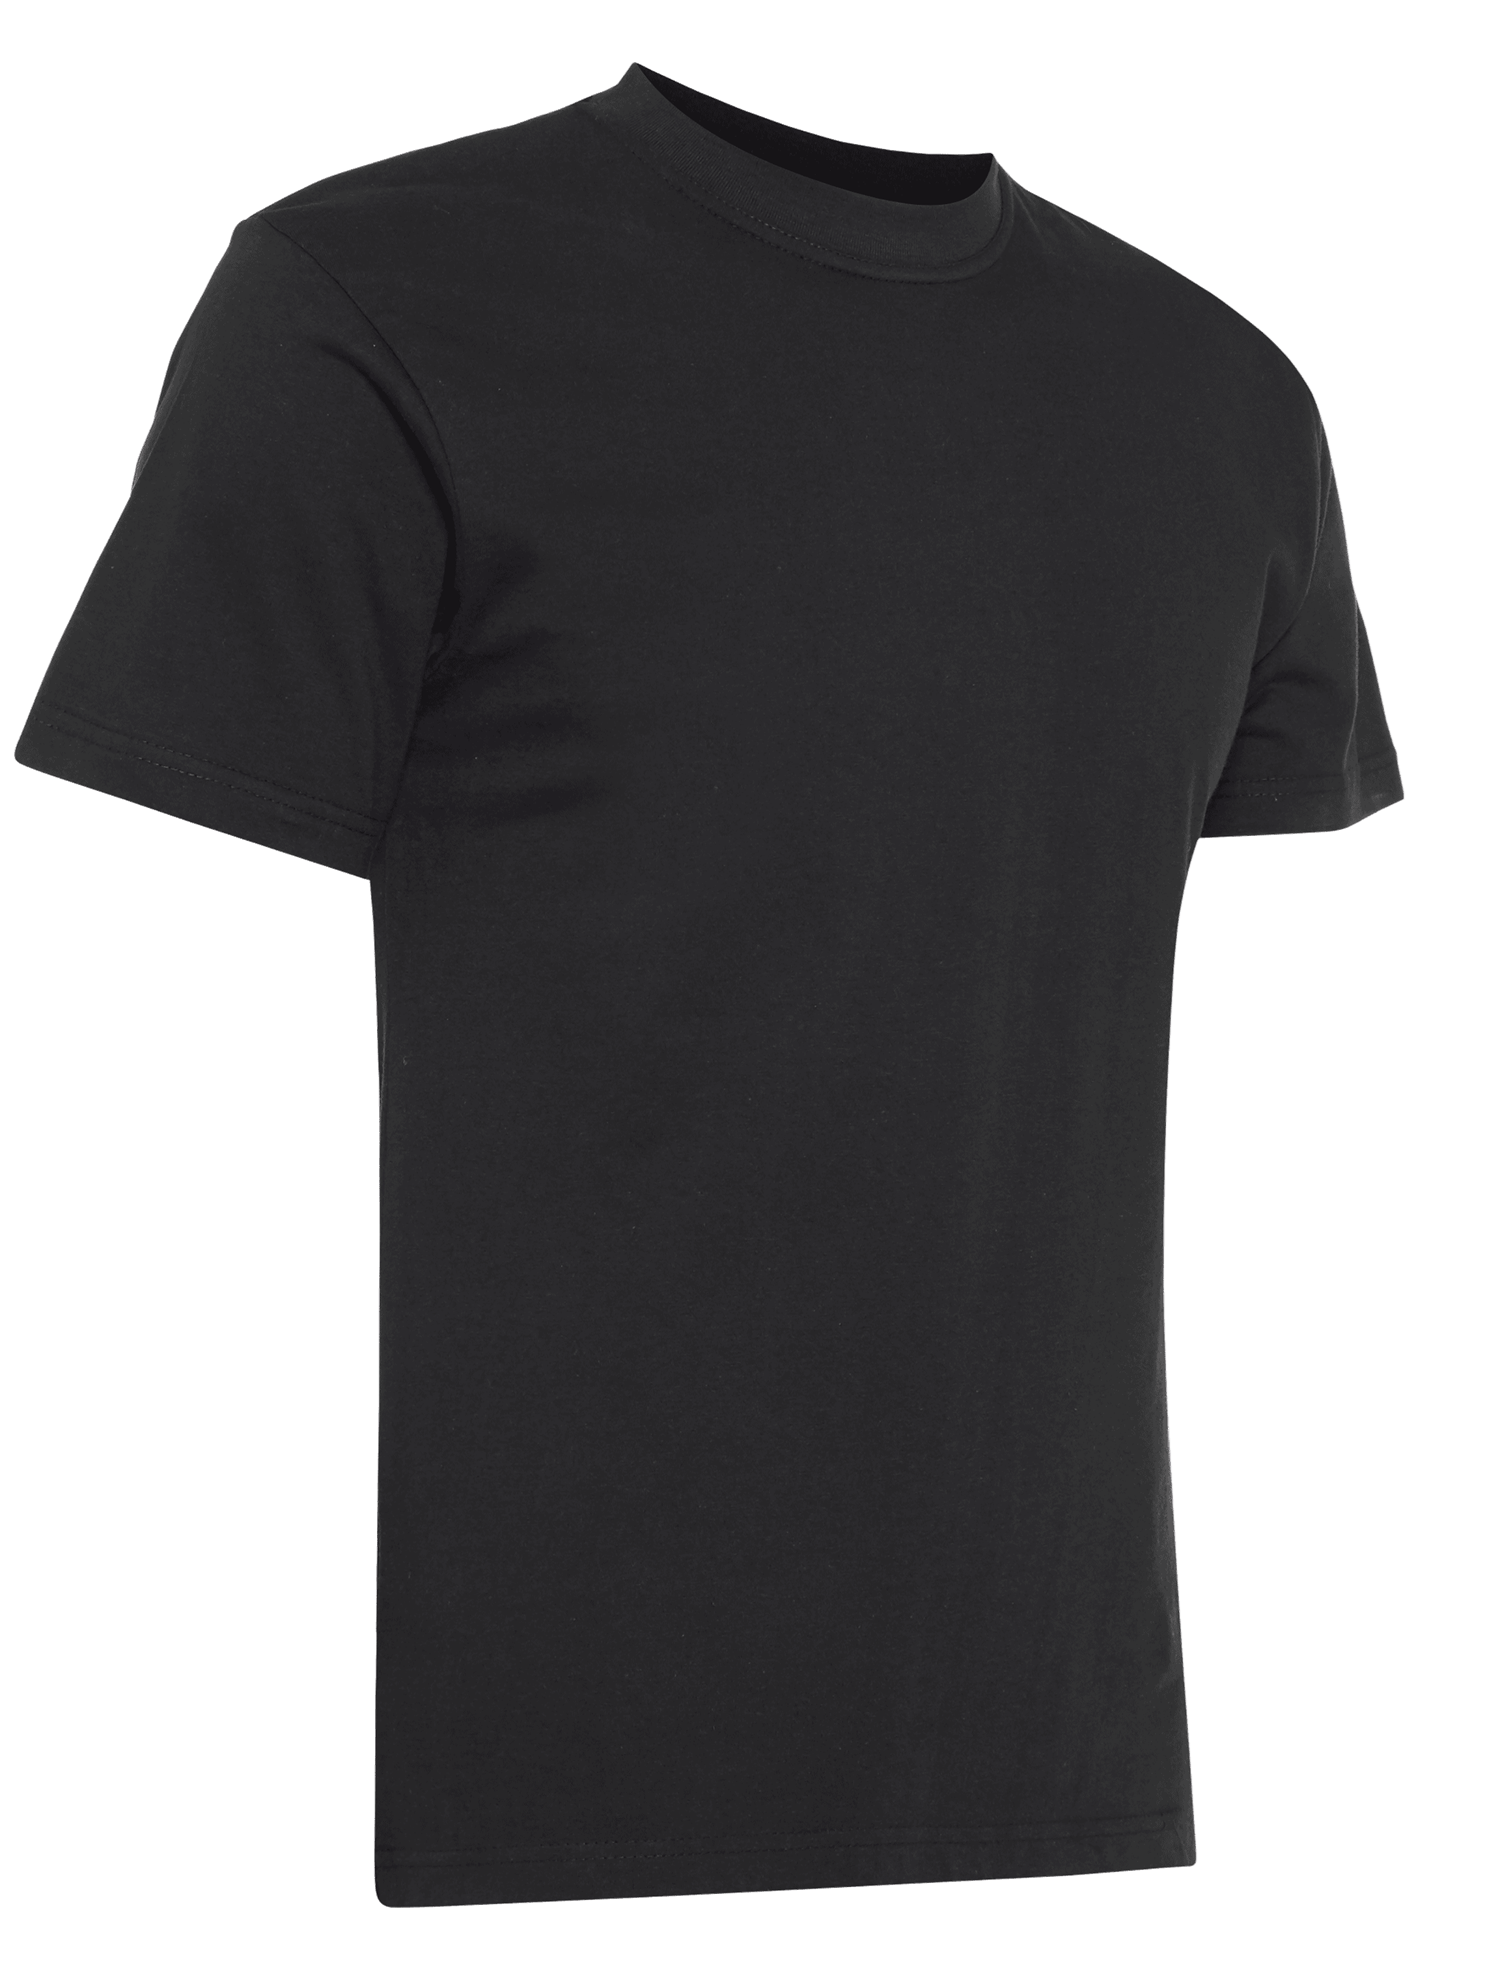 Picture of 100% Cotton T Shirt - Black